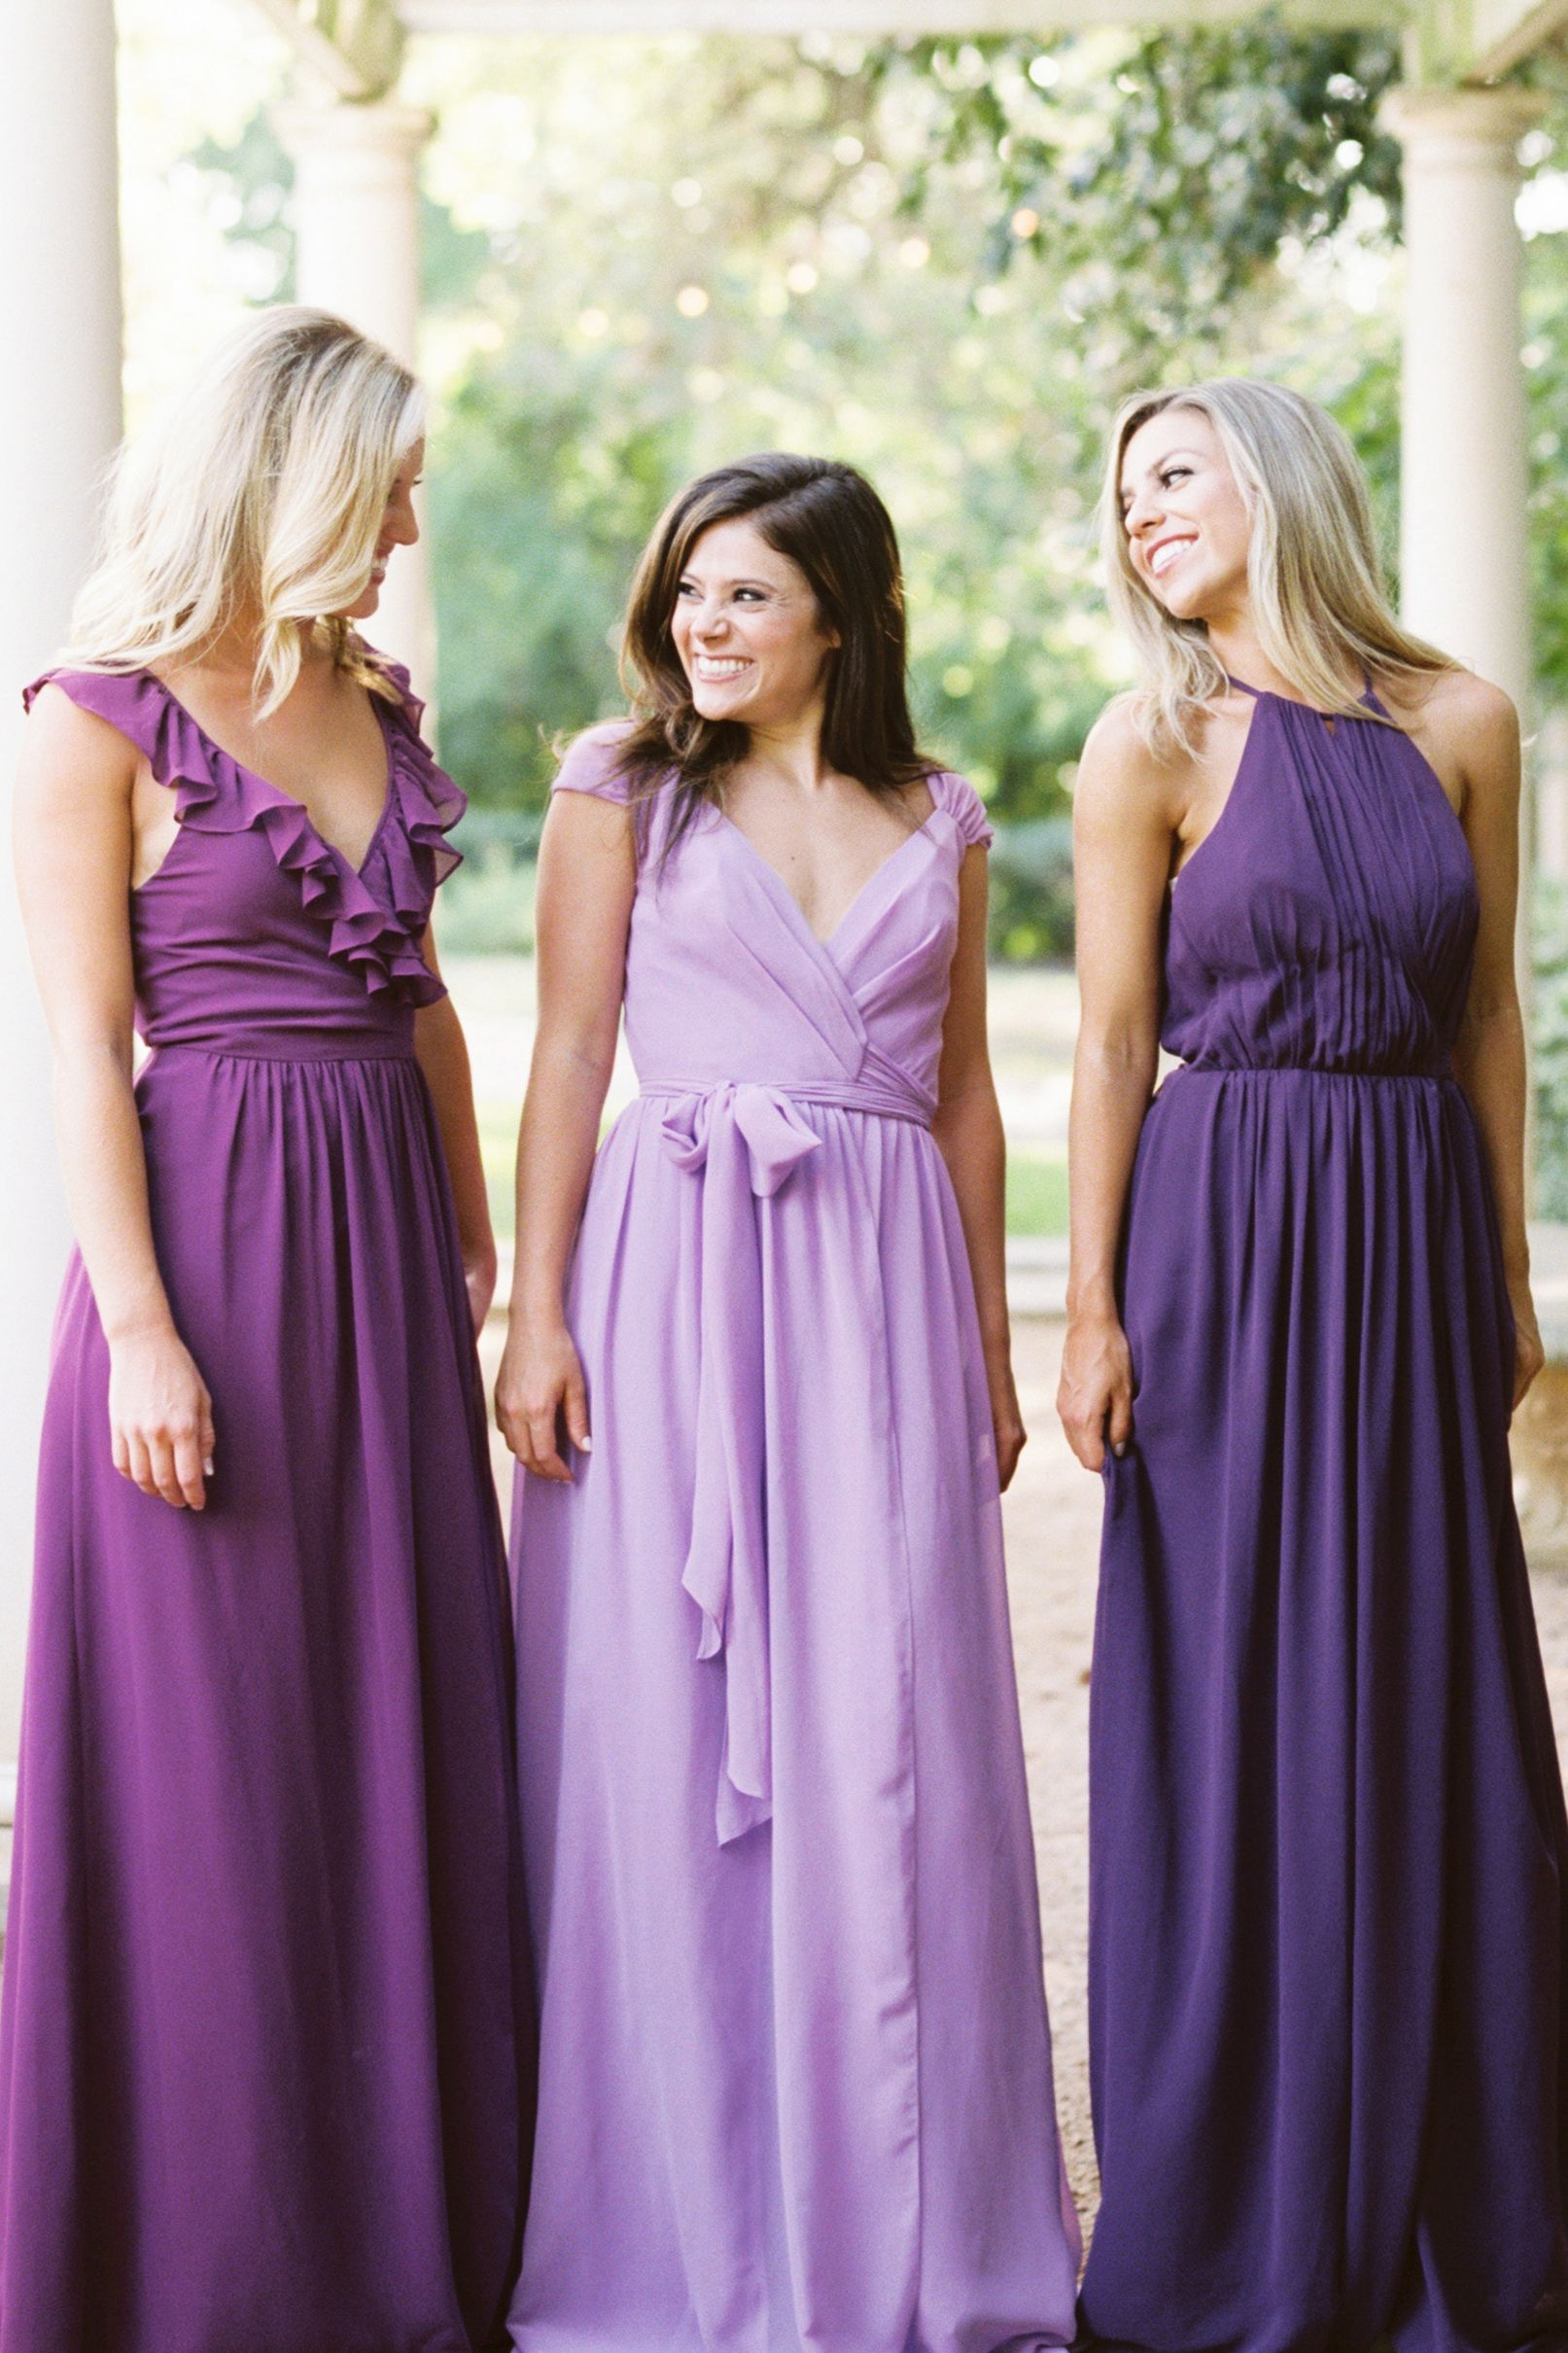 Bridesmaid Dresses And Separates From The Leading Ecommerce Bridesmaid Dress Company Bridesmaid Dresses Wedding Dress Long Sleeve Bridesmaid Dresses Separates